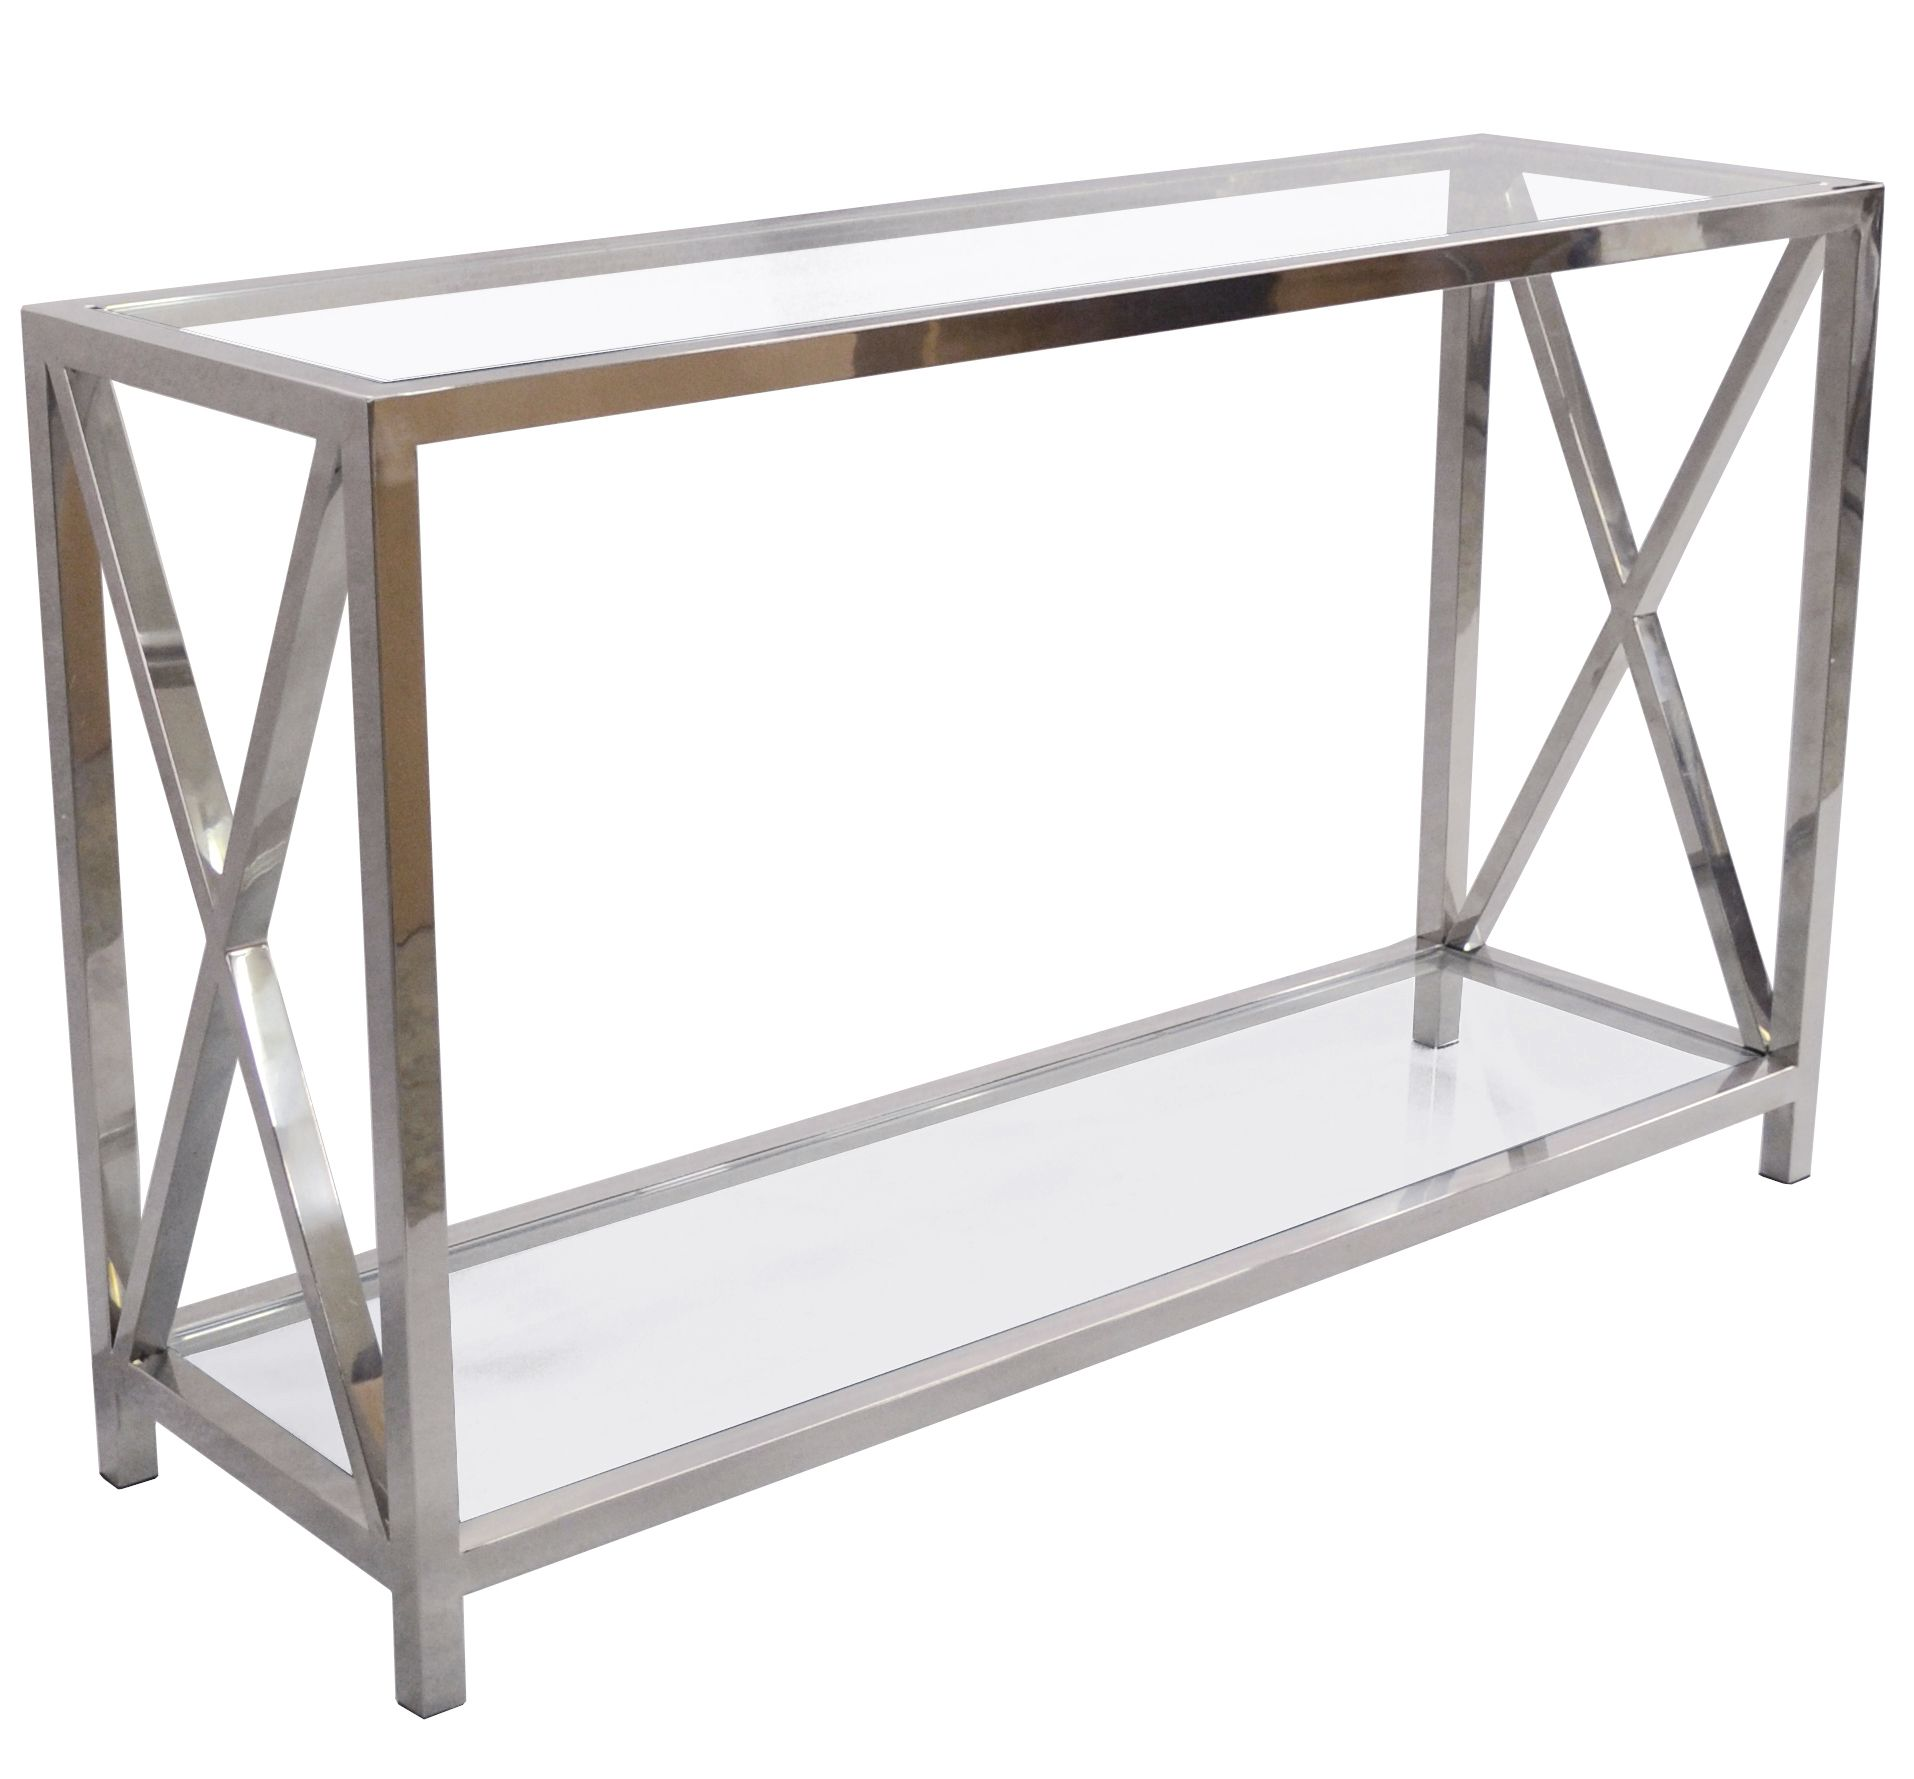 Go with glass and this Alnwick Console table for that monochrome trend and  glamorously stylish look